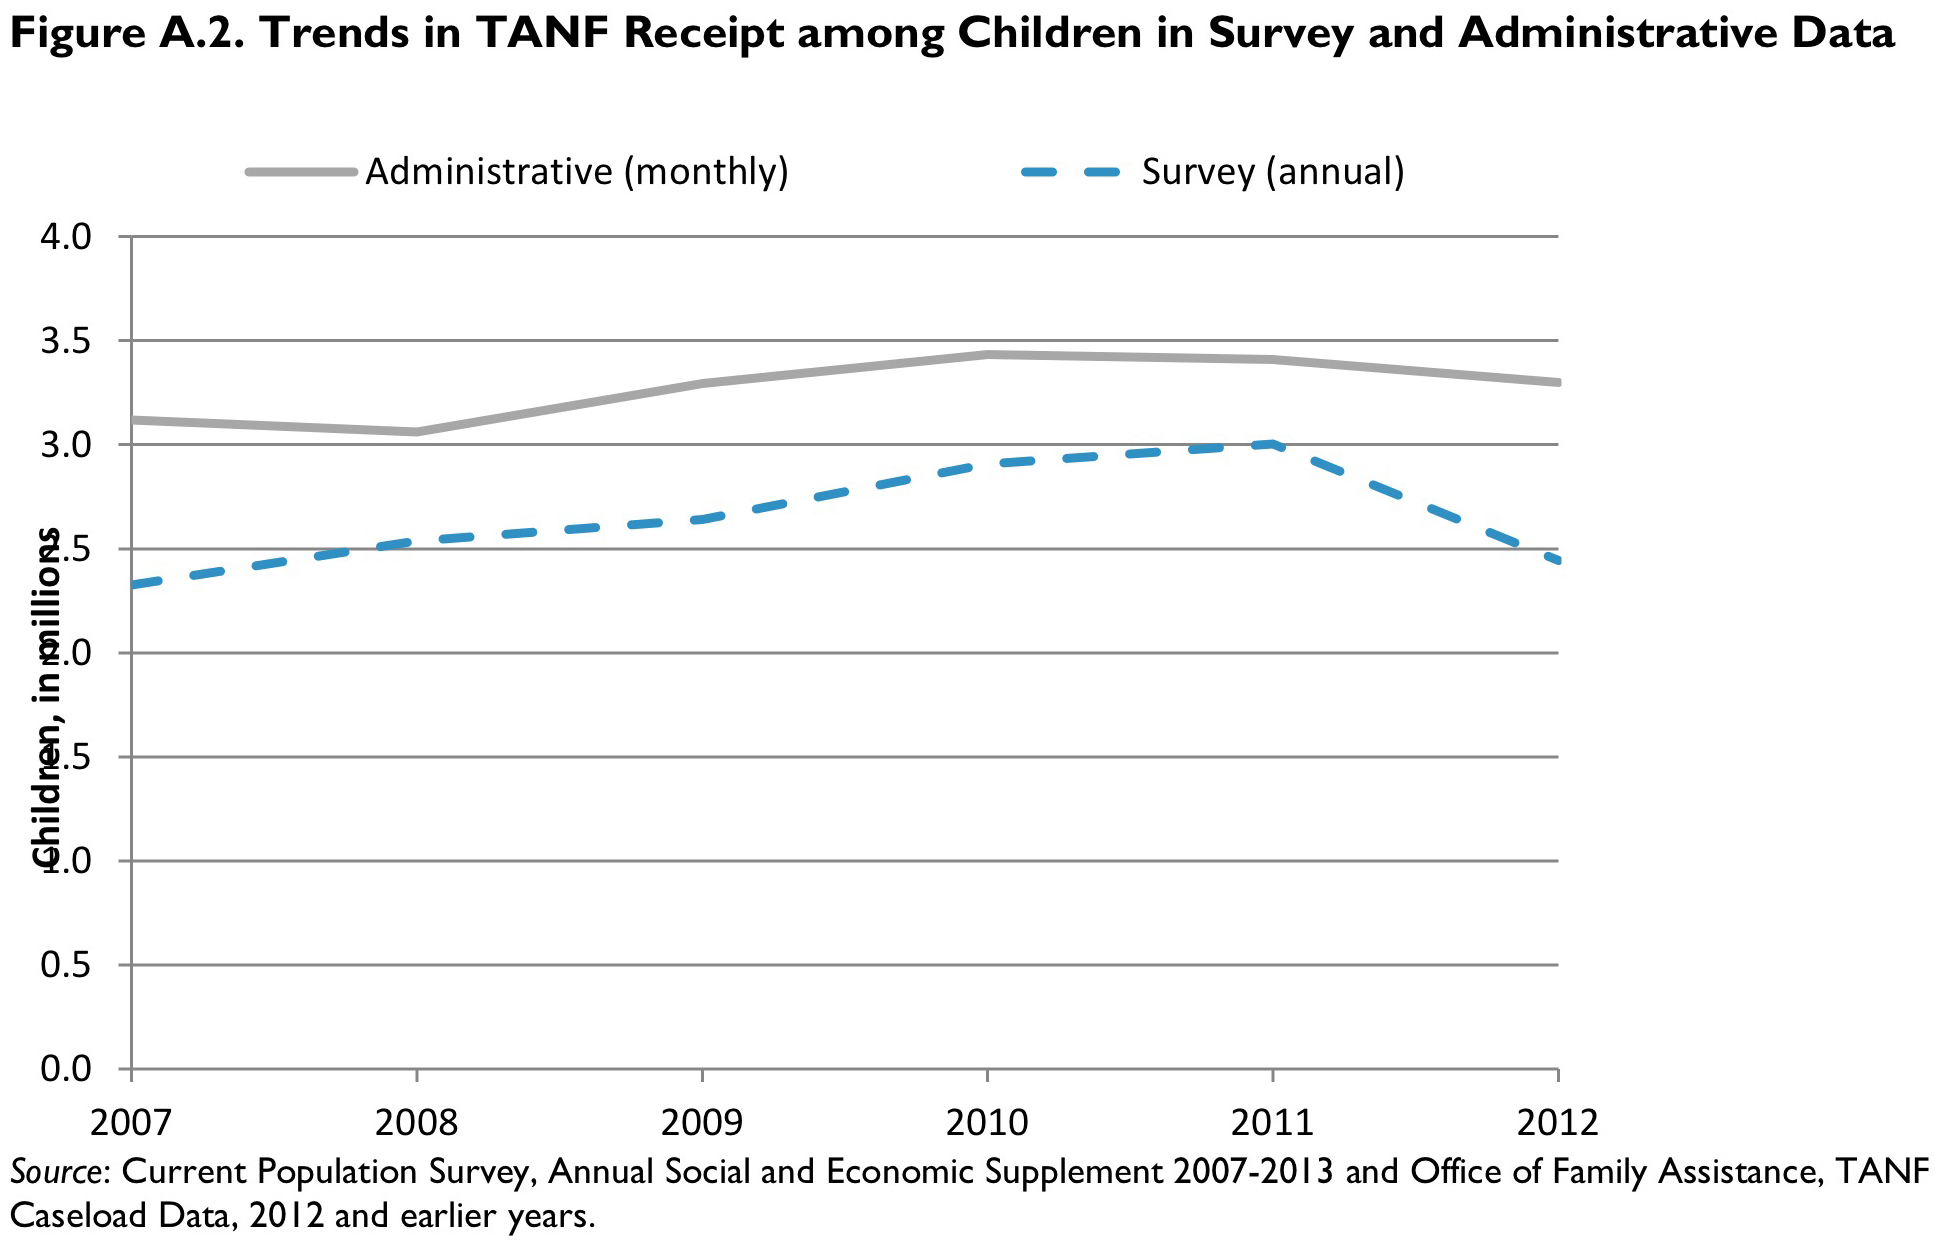 Figure A.2. Trends in TANF Receipt among Children in Survey and Administrative Data